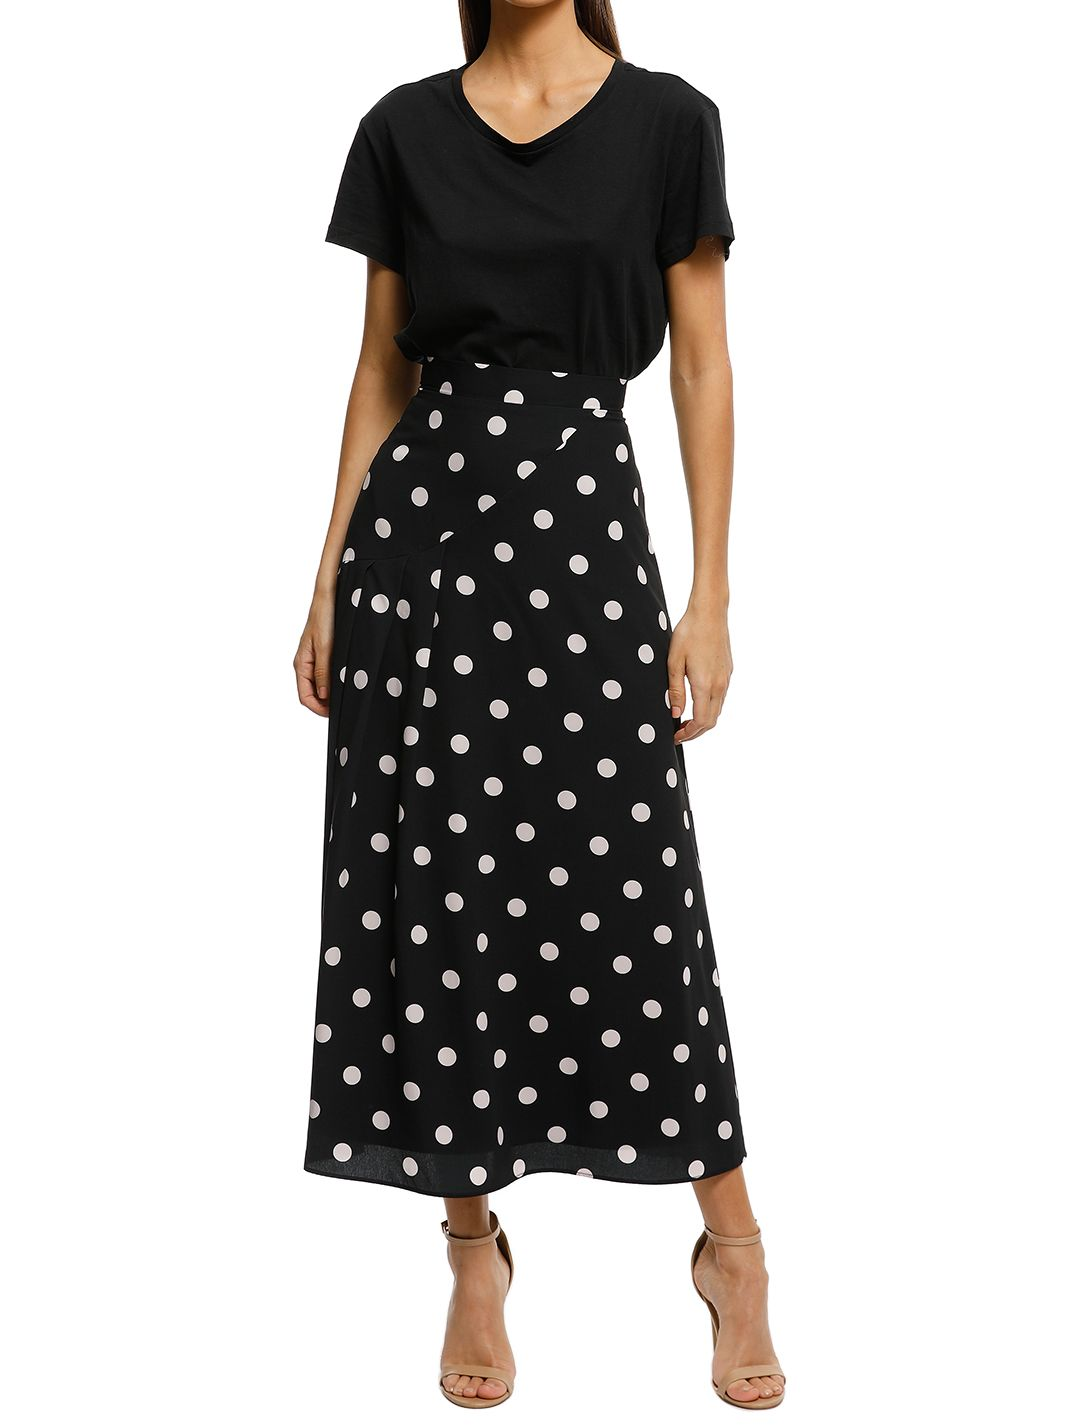 Pasduchas-Abbey-Skirt-Black-White-Front